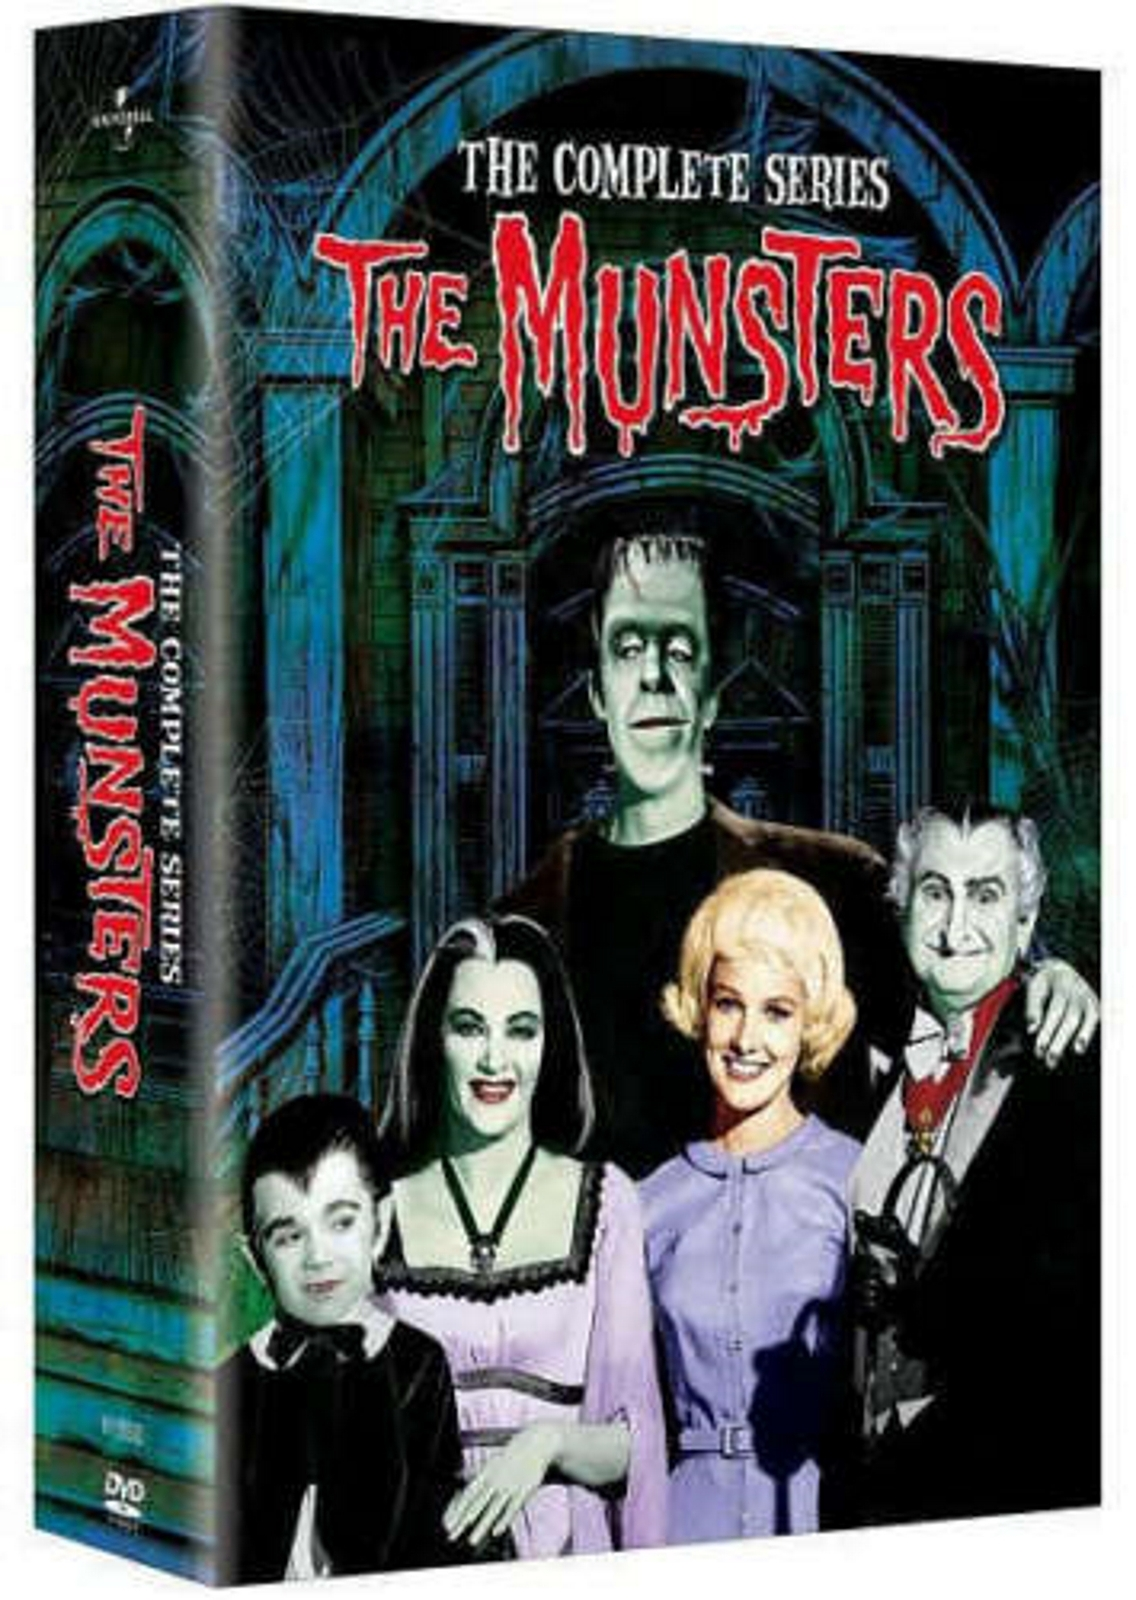 The munsters   the complete series  dvd  2008  12 disc set  2